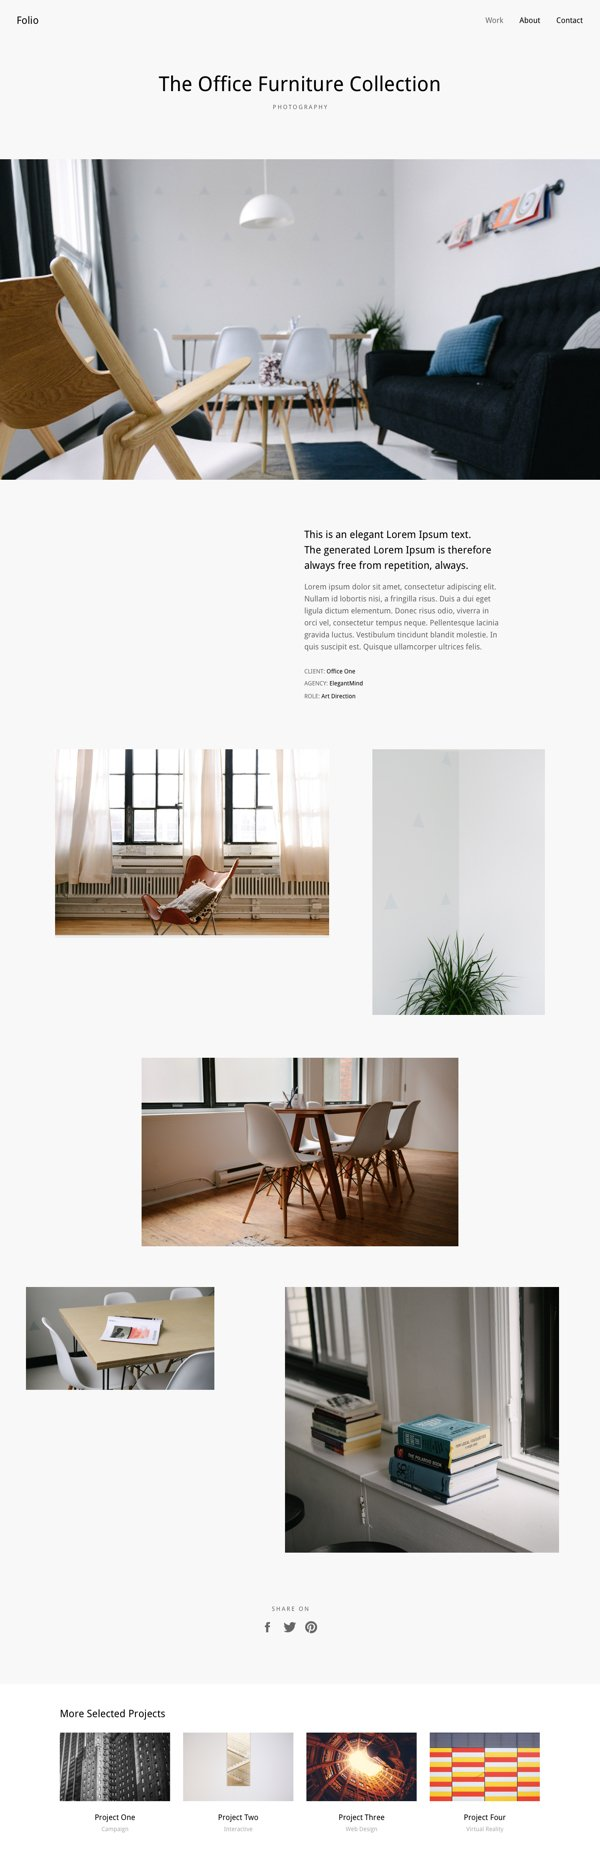 single-page-portfolio-layout-02